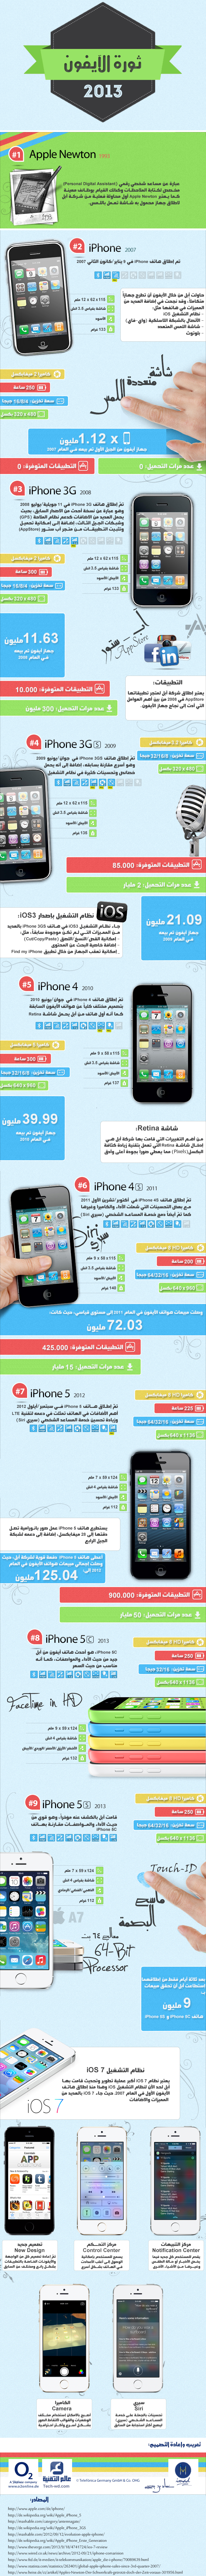 infographic iphone 5s 5c imad&tech-wd